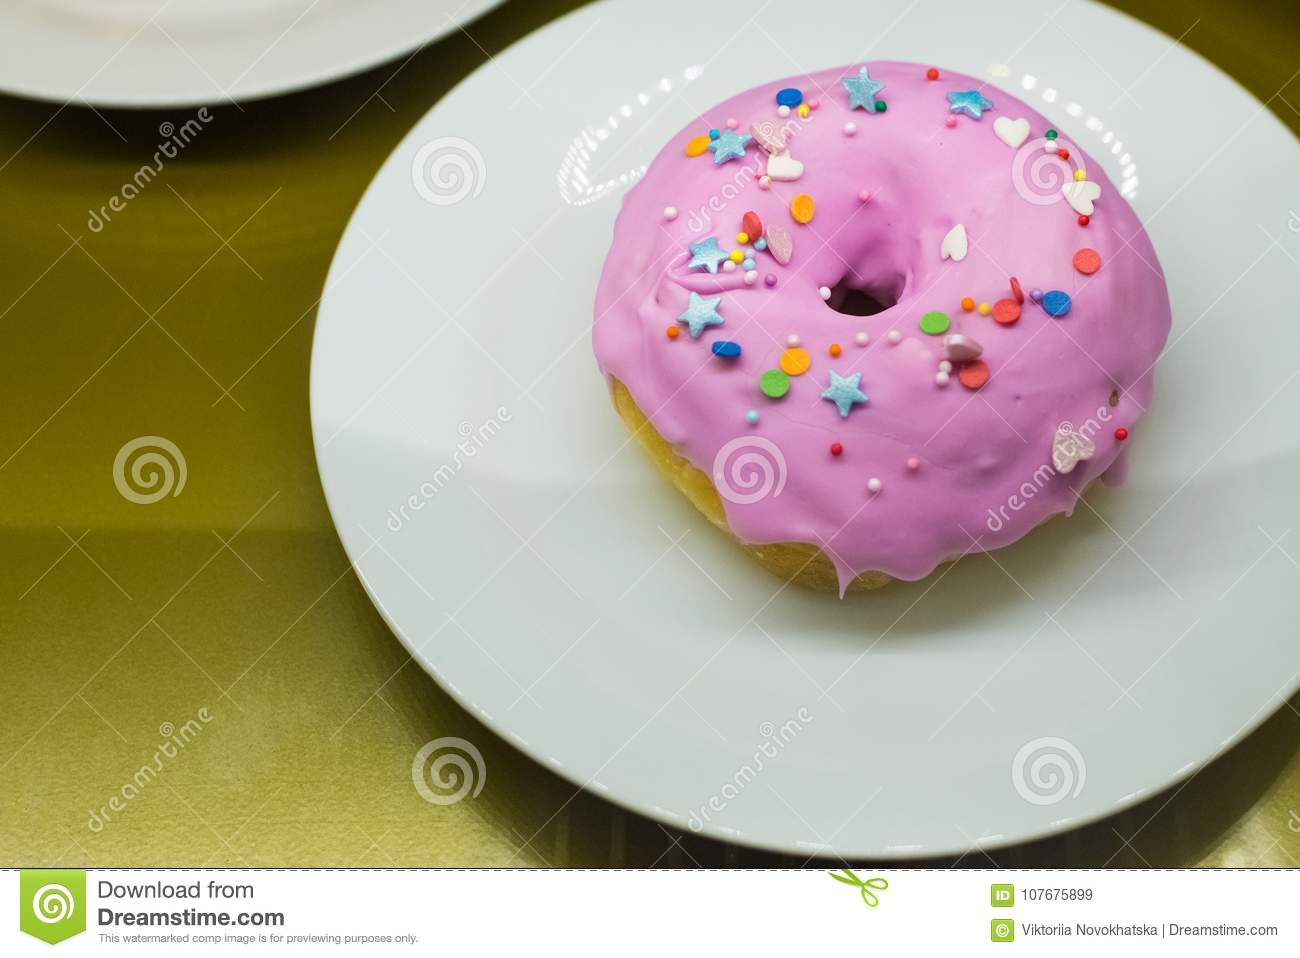 Pink donut with decoration